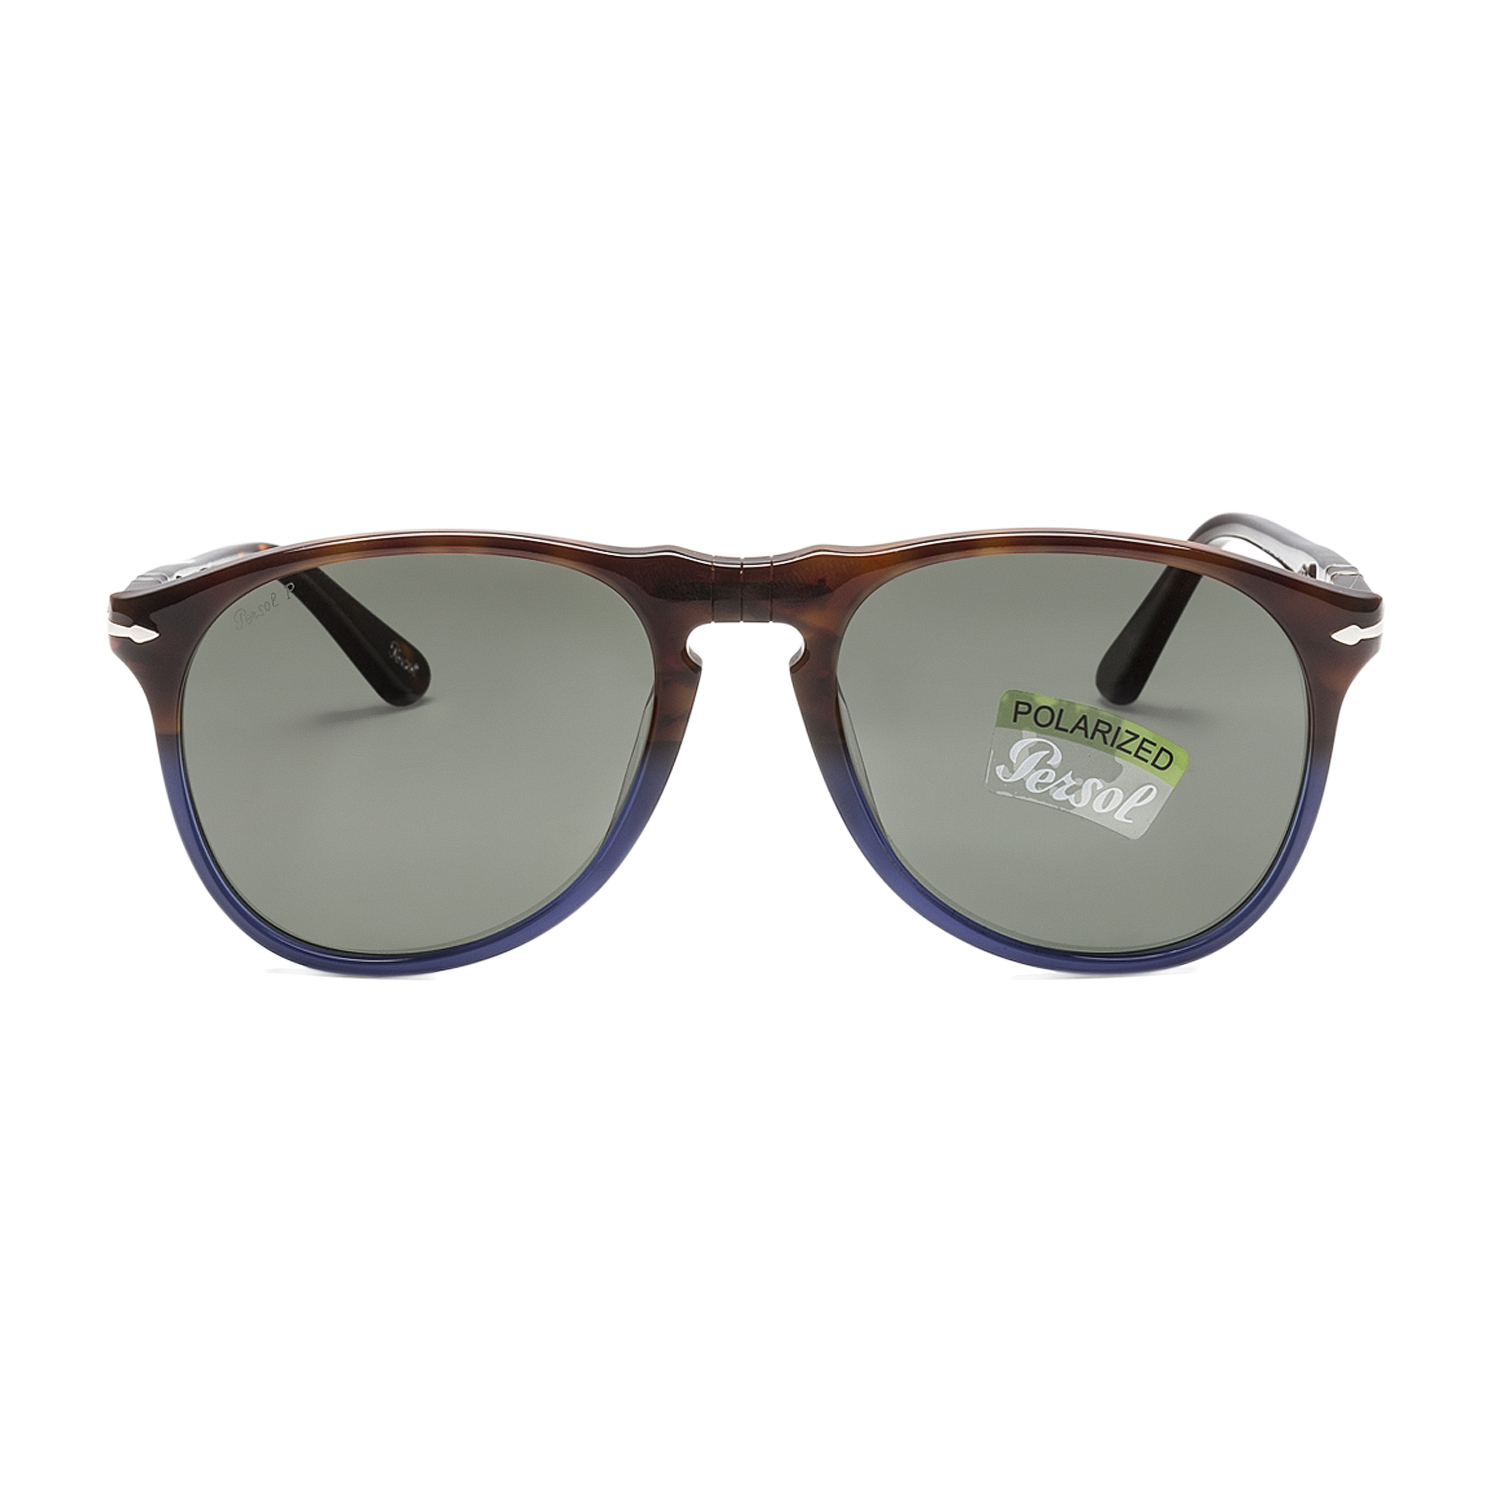 6112111aac0 Persol 9649 Aviator Sunglasses Terra e Oceano Brown Blue   Green Polarized  52 mm